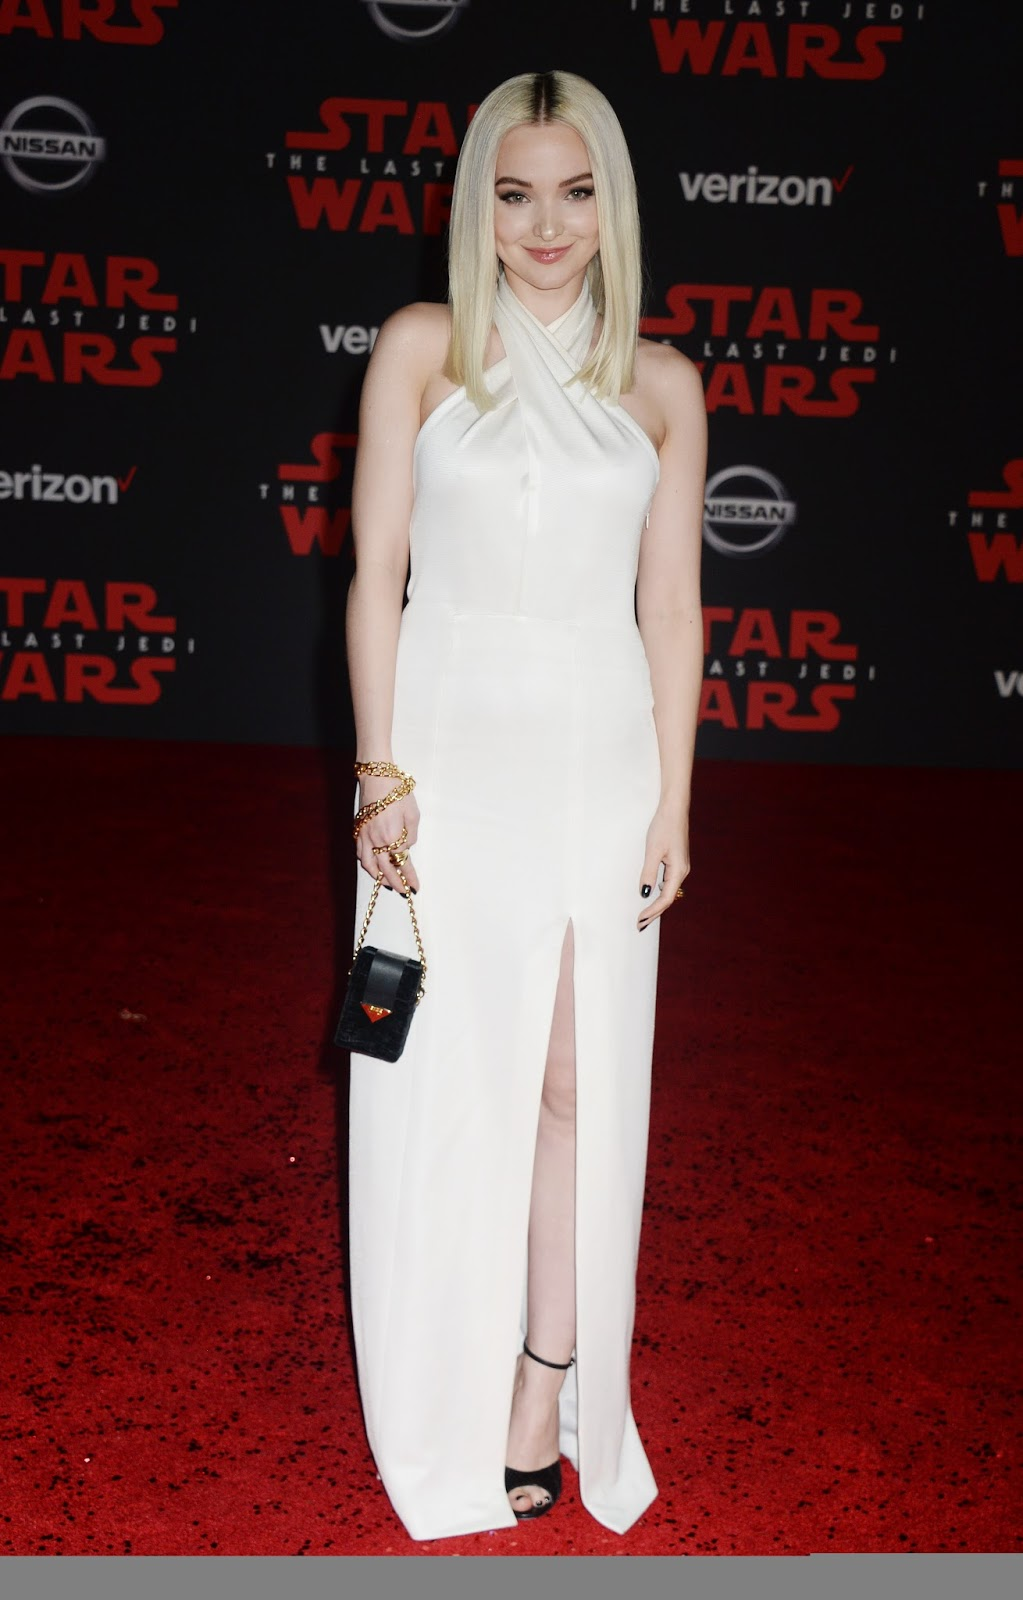 Dove Cameron on the Red Carpet of the 'Star Wars The Last Jedi' premiere in Los Angeles